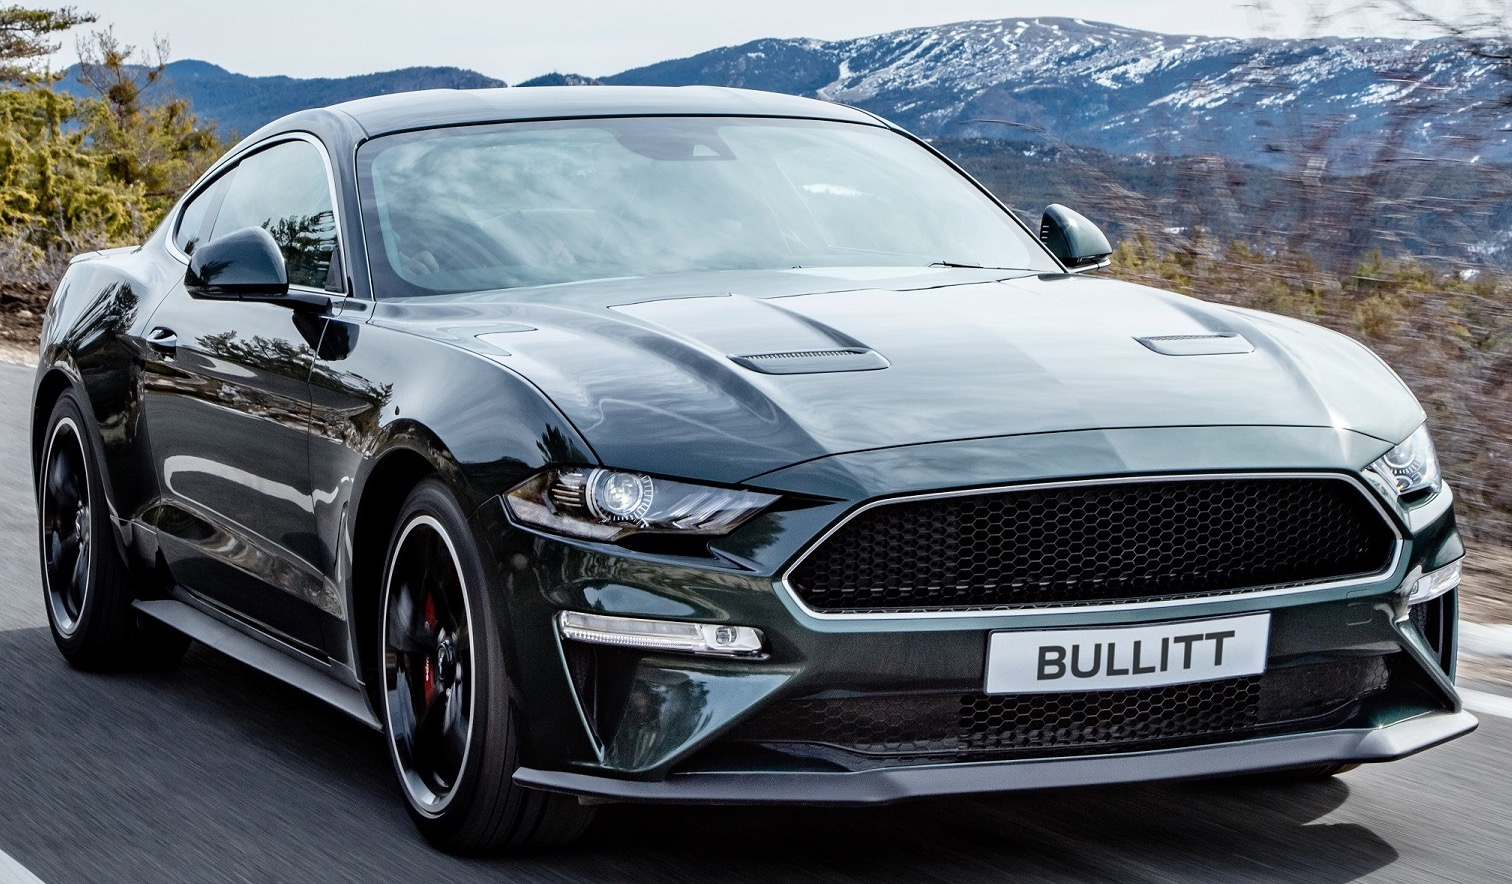 Celebrating the 50th anniversary of the legendary film the new special edition ford mustang bullitt is now available in ireland and is powered by an